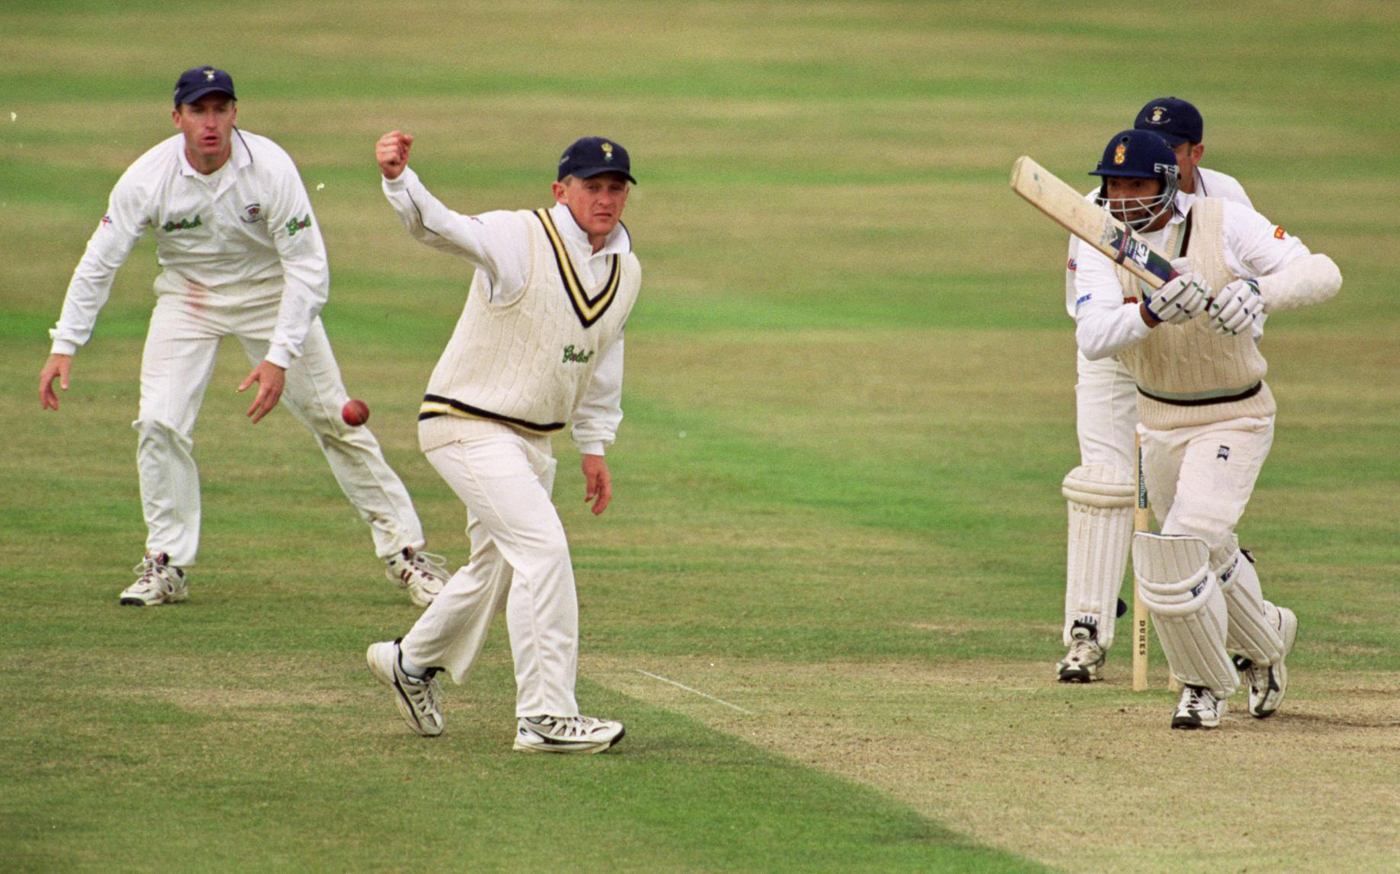 We'll take the points, you take the match: Phil DeFreitas bats for Derbyshire against Hampshire in 1999